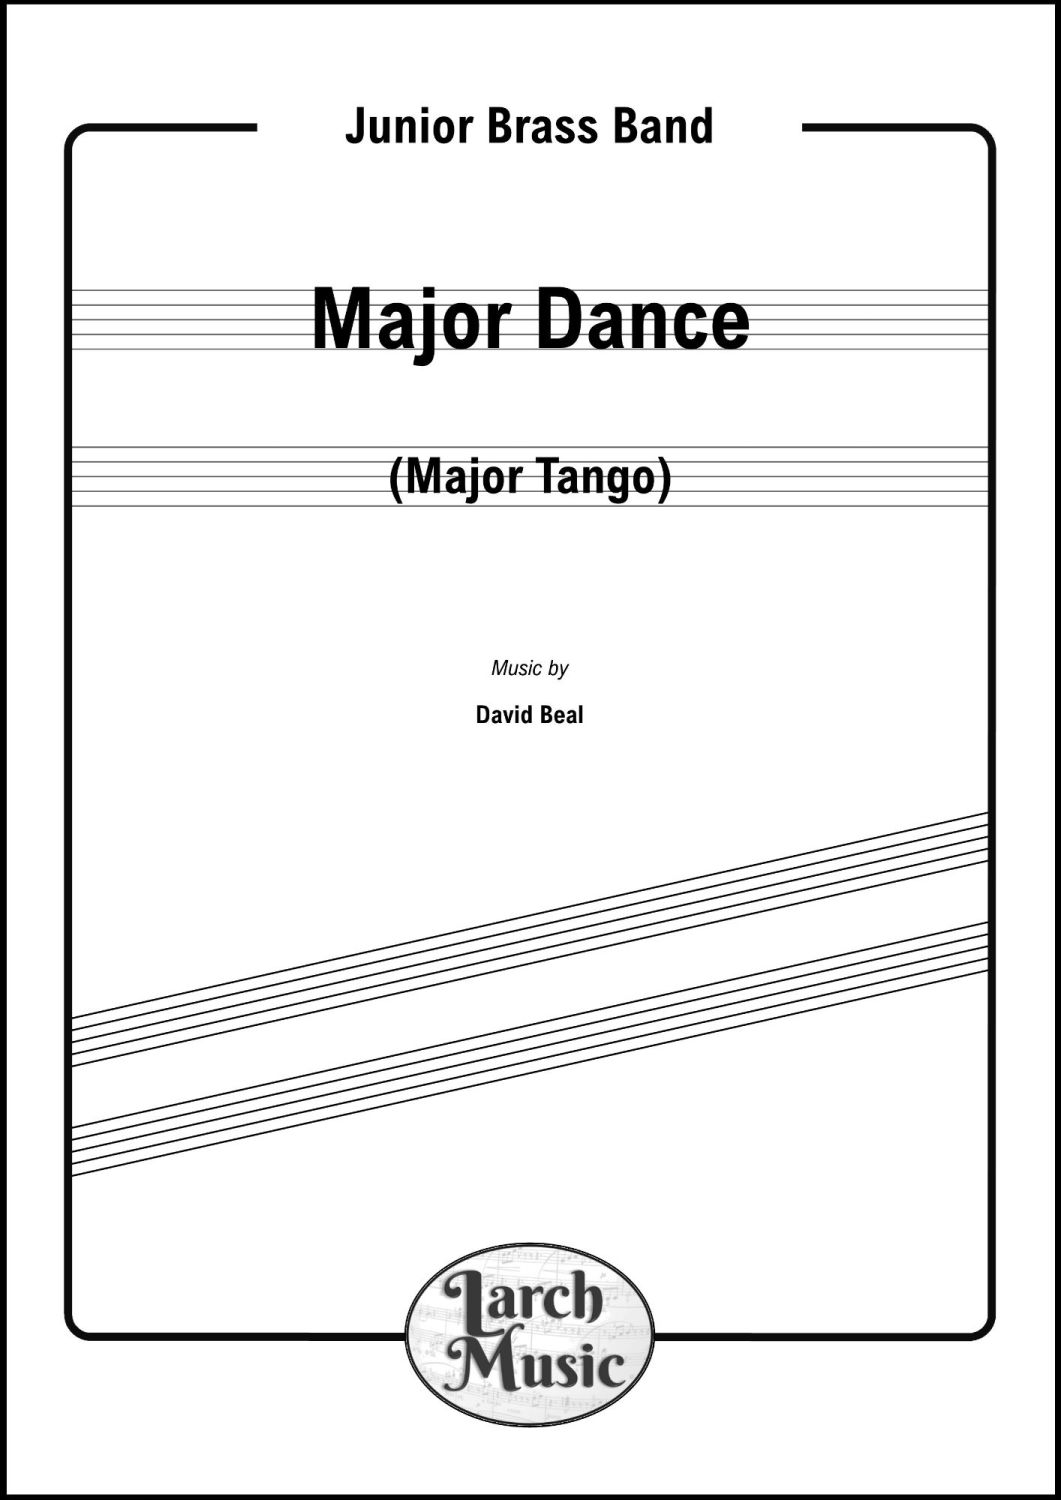 Major Dance (Major Tango) - Junior Brass Band